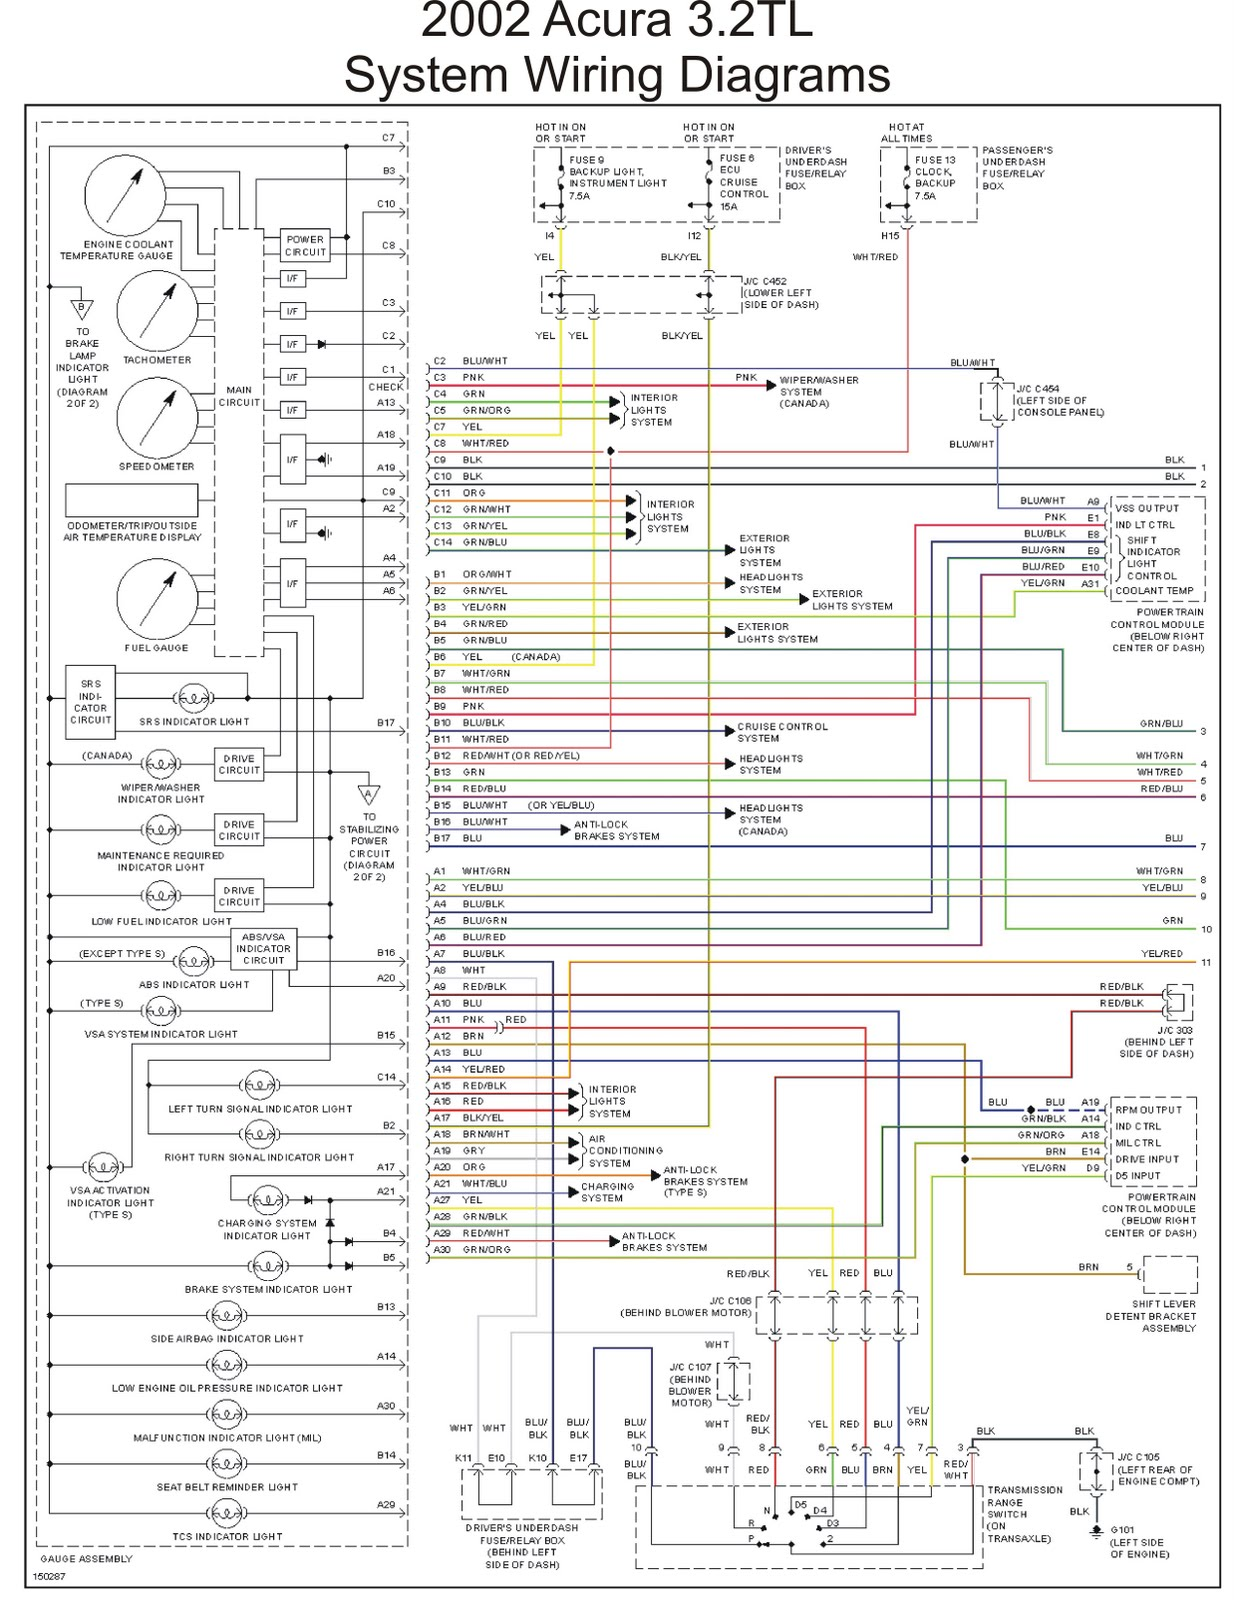 June 2011 | Schematic Wiring Diagrams Solutions